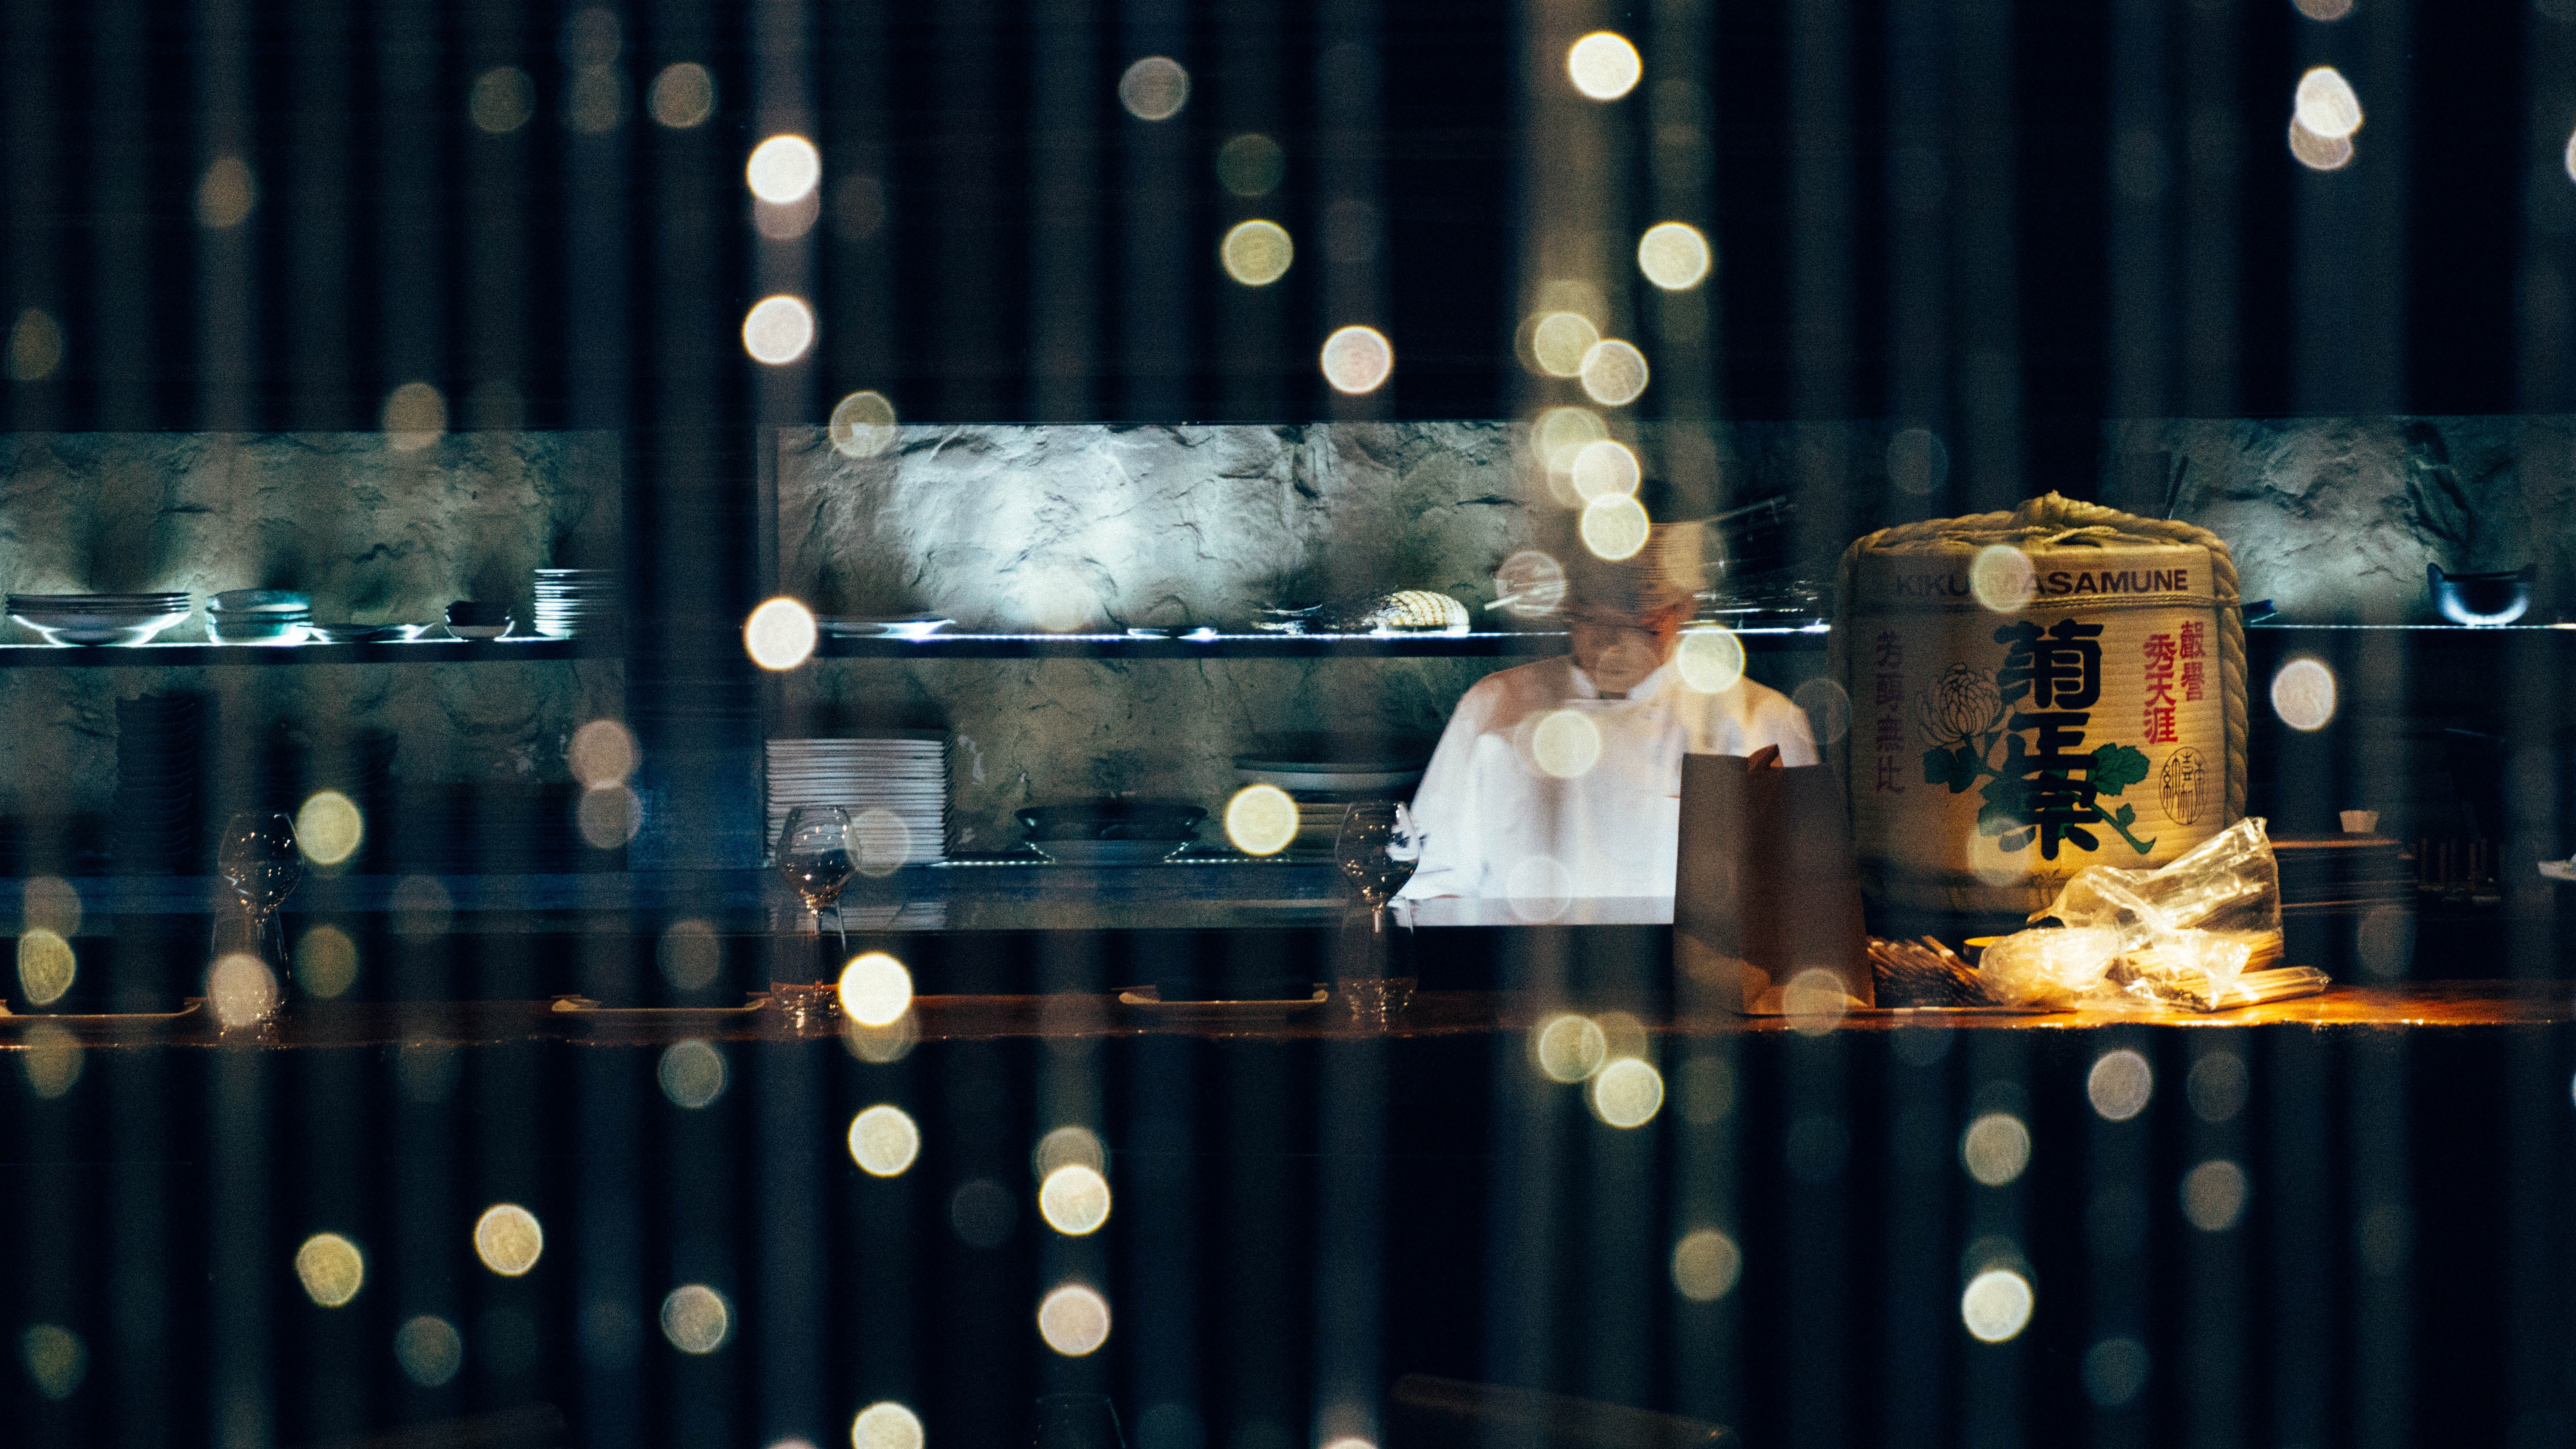 A cook working in an Asian restaurant seen through a window with bokeh effect